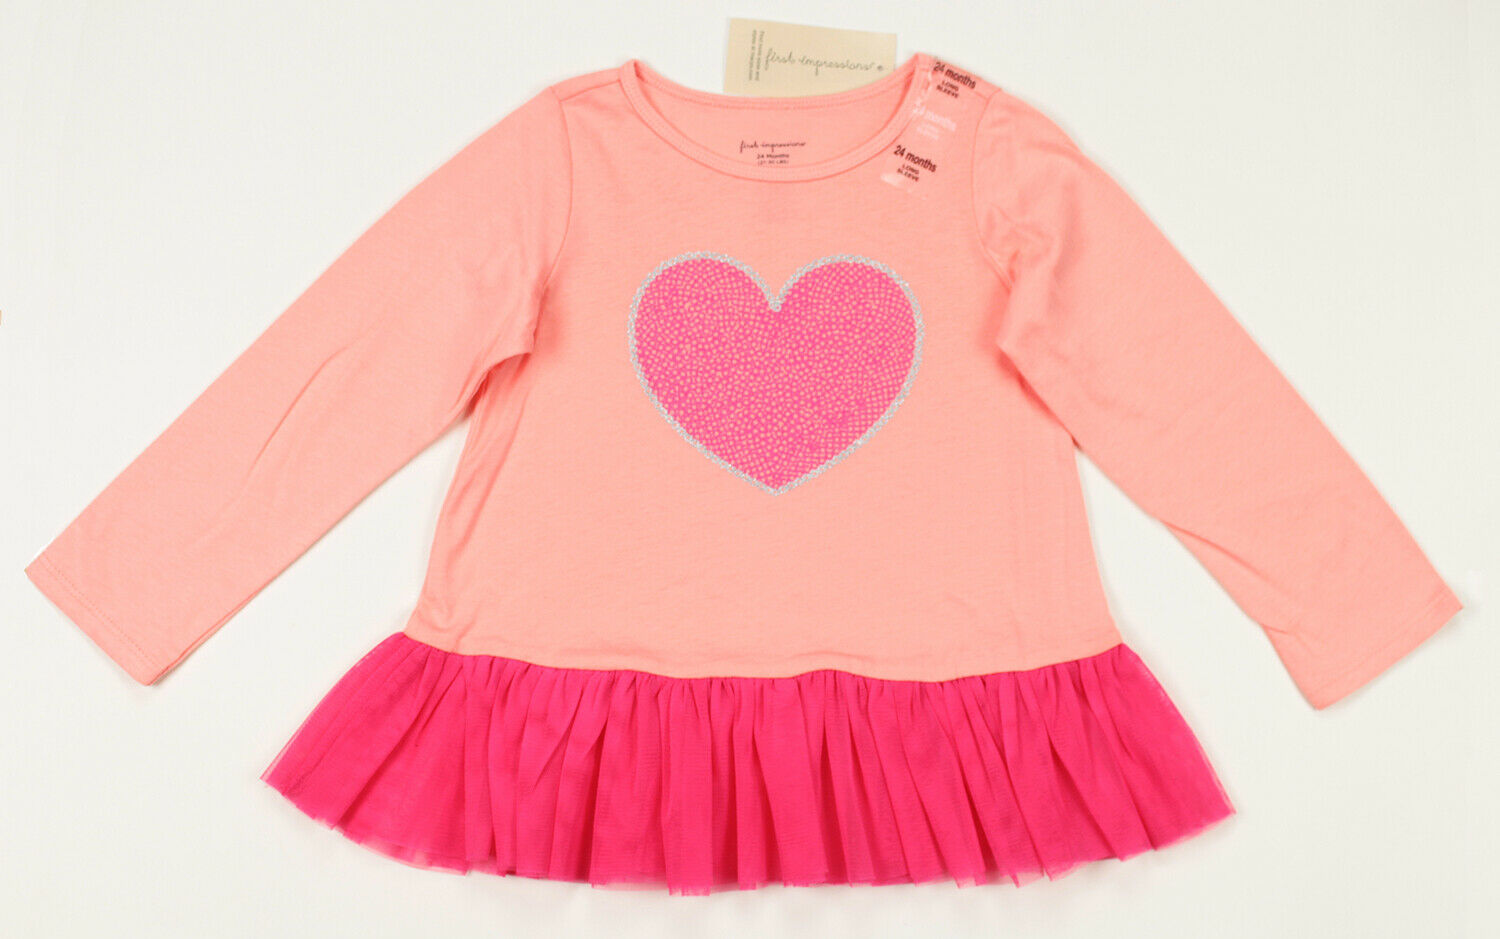 FIRST IMPRESSIONS NEW TODDLER GIRLS LONG SLEEVE COTTON PINK TULLE TUNIC 24M - $8.90